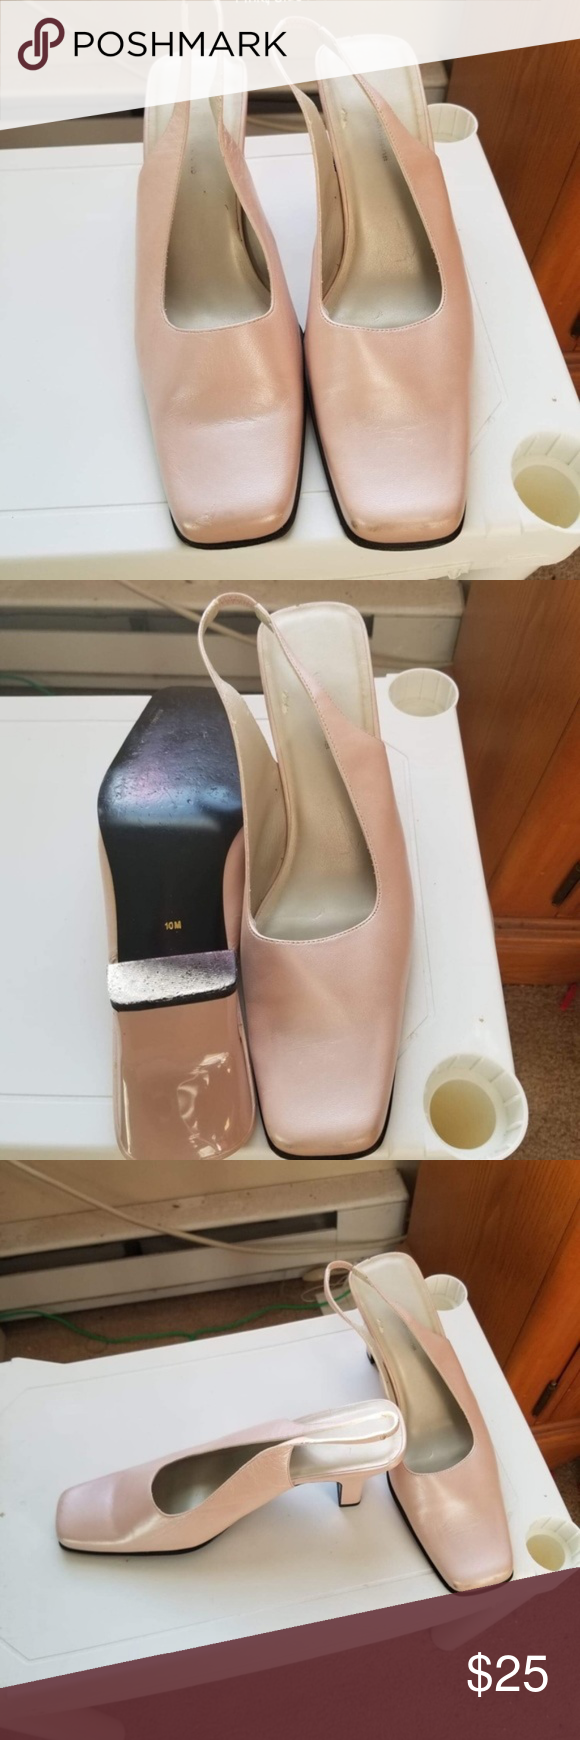 Slingback Heels Very good condition. Pink pearl soft